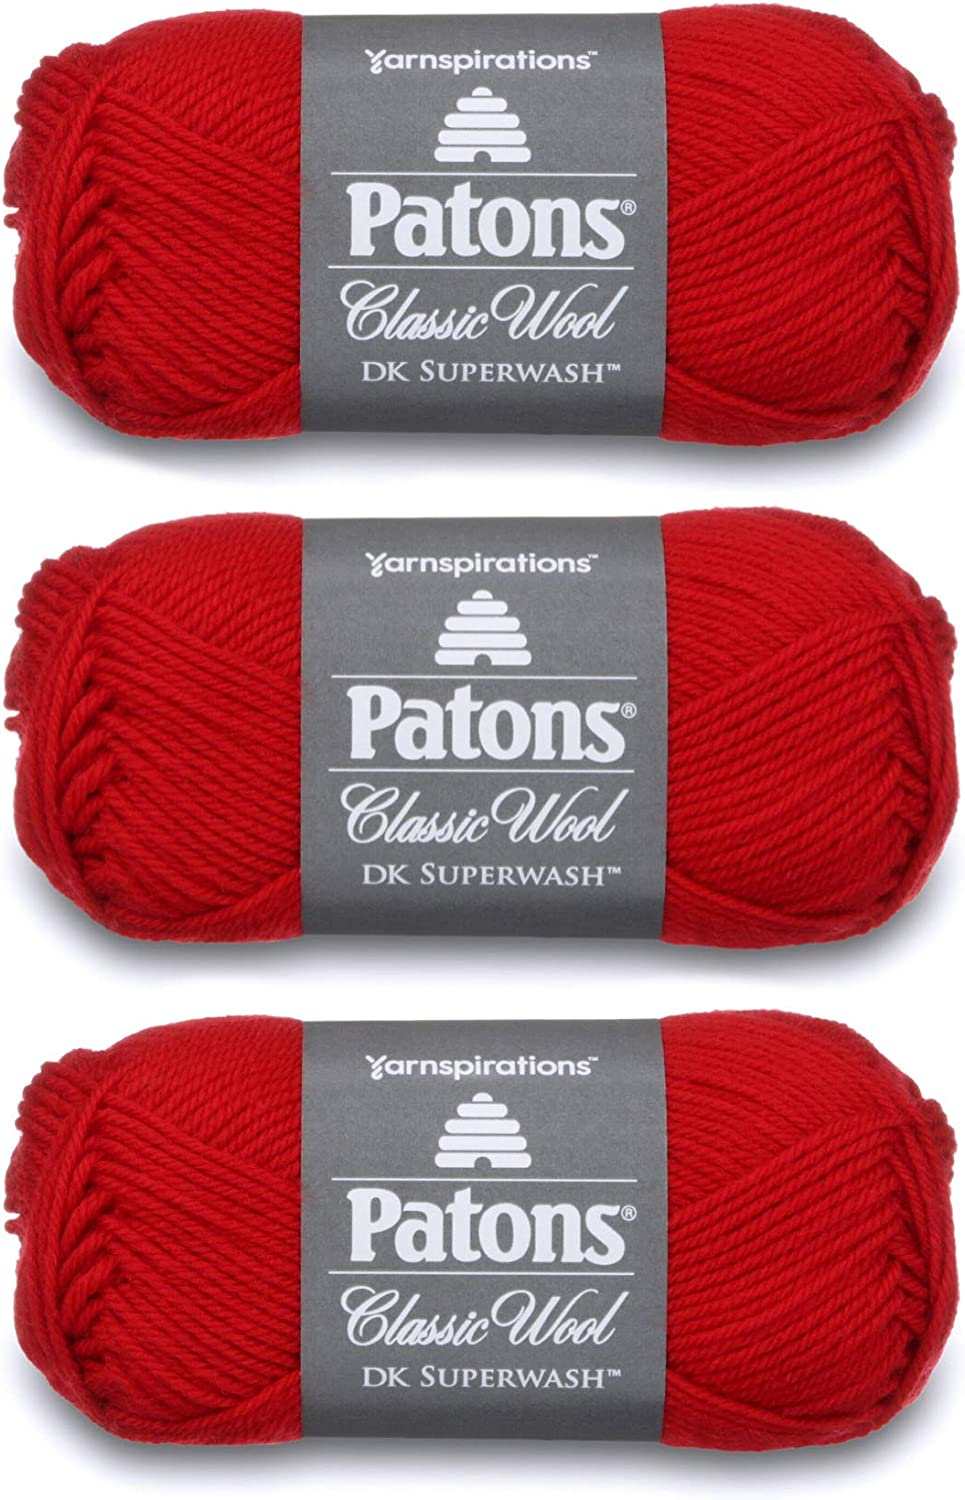 Patons Classic Wool DK Superwash Yarn - Gauge 3 Light - 100% Wool - (3-Pack) - Red - for Crochet, Knitting, and Crafting